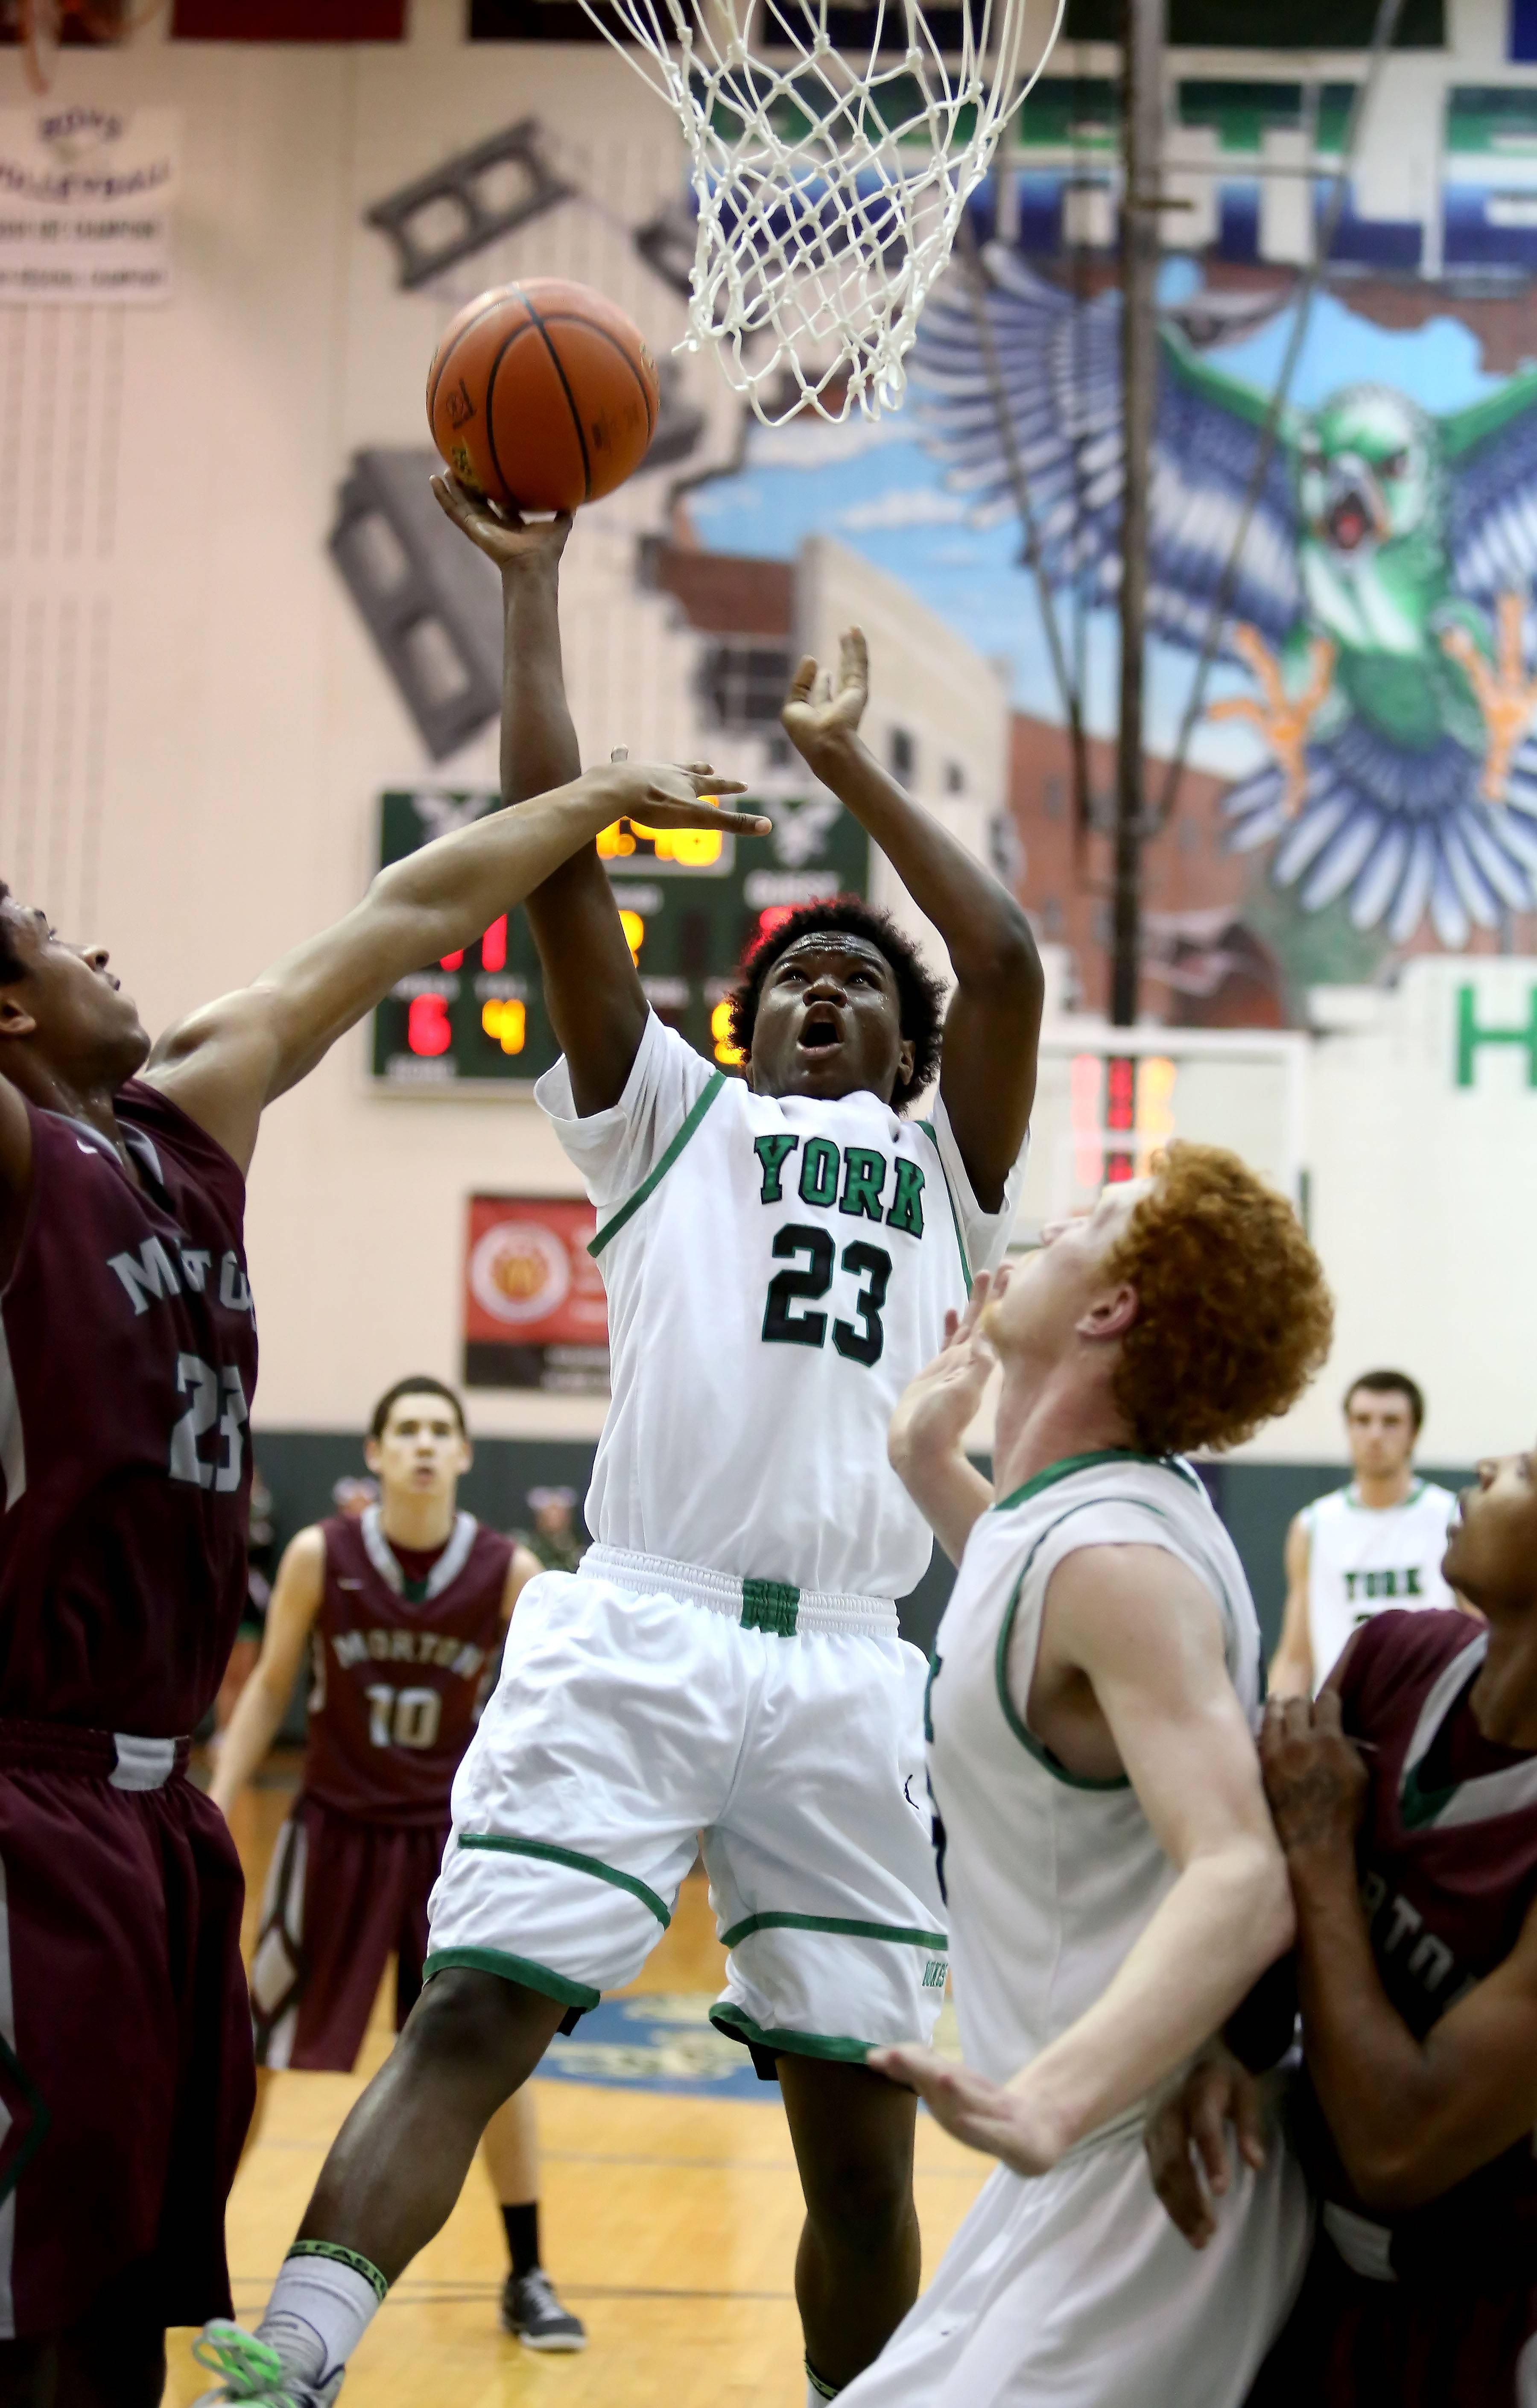 York's Jayvon Thomas goes up for a basket against Morton.